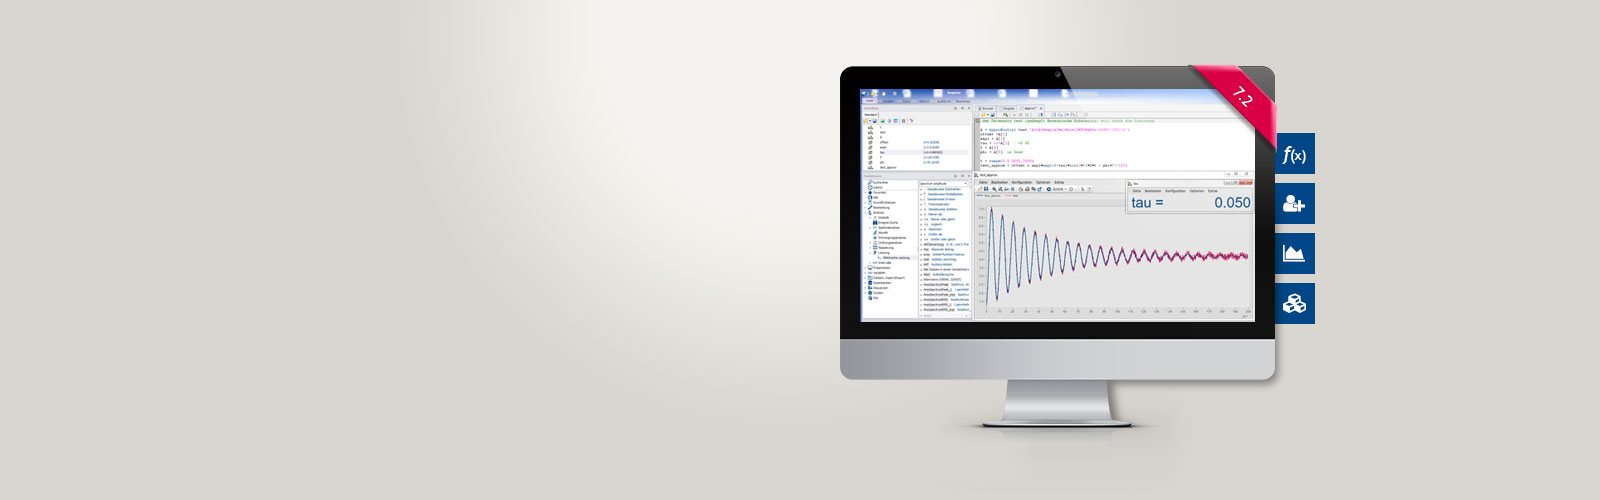 imc FAMOS 7.2 data analysis software